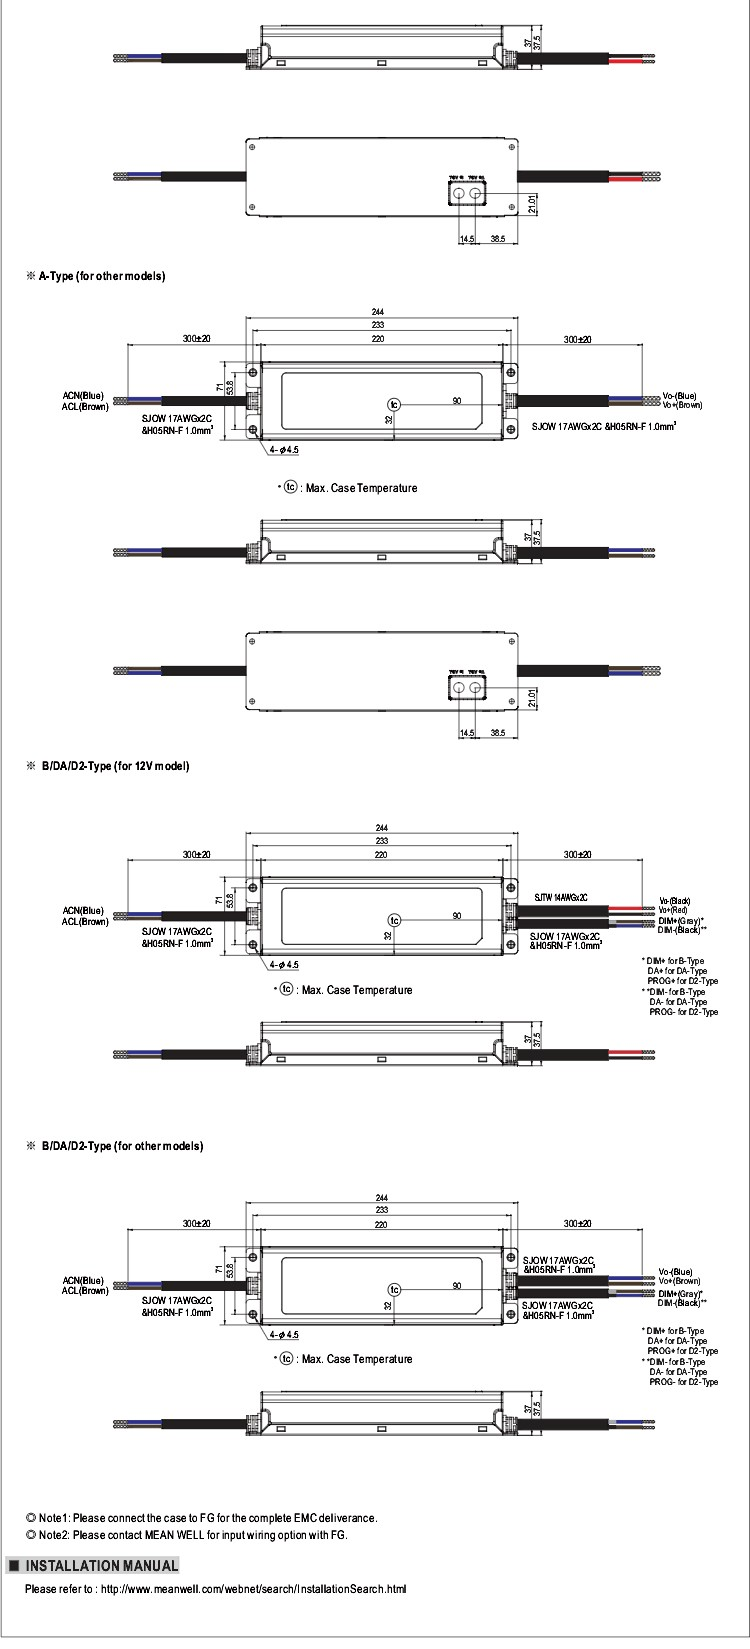 Mean Well Elg 200 12a 200w 12v Led Power Supply Driver Schematic